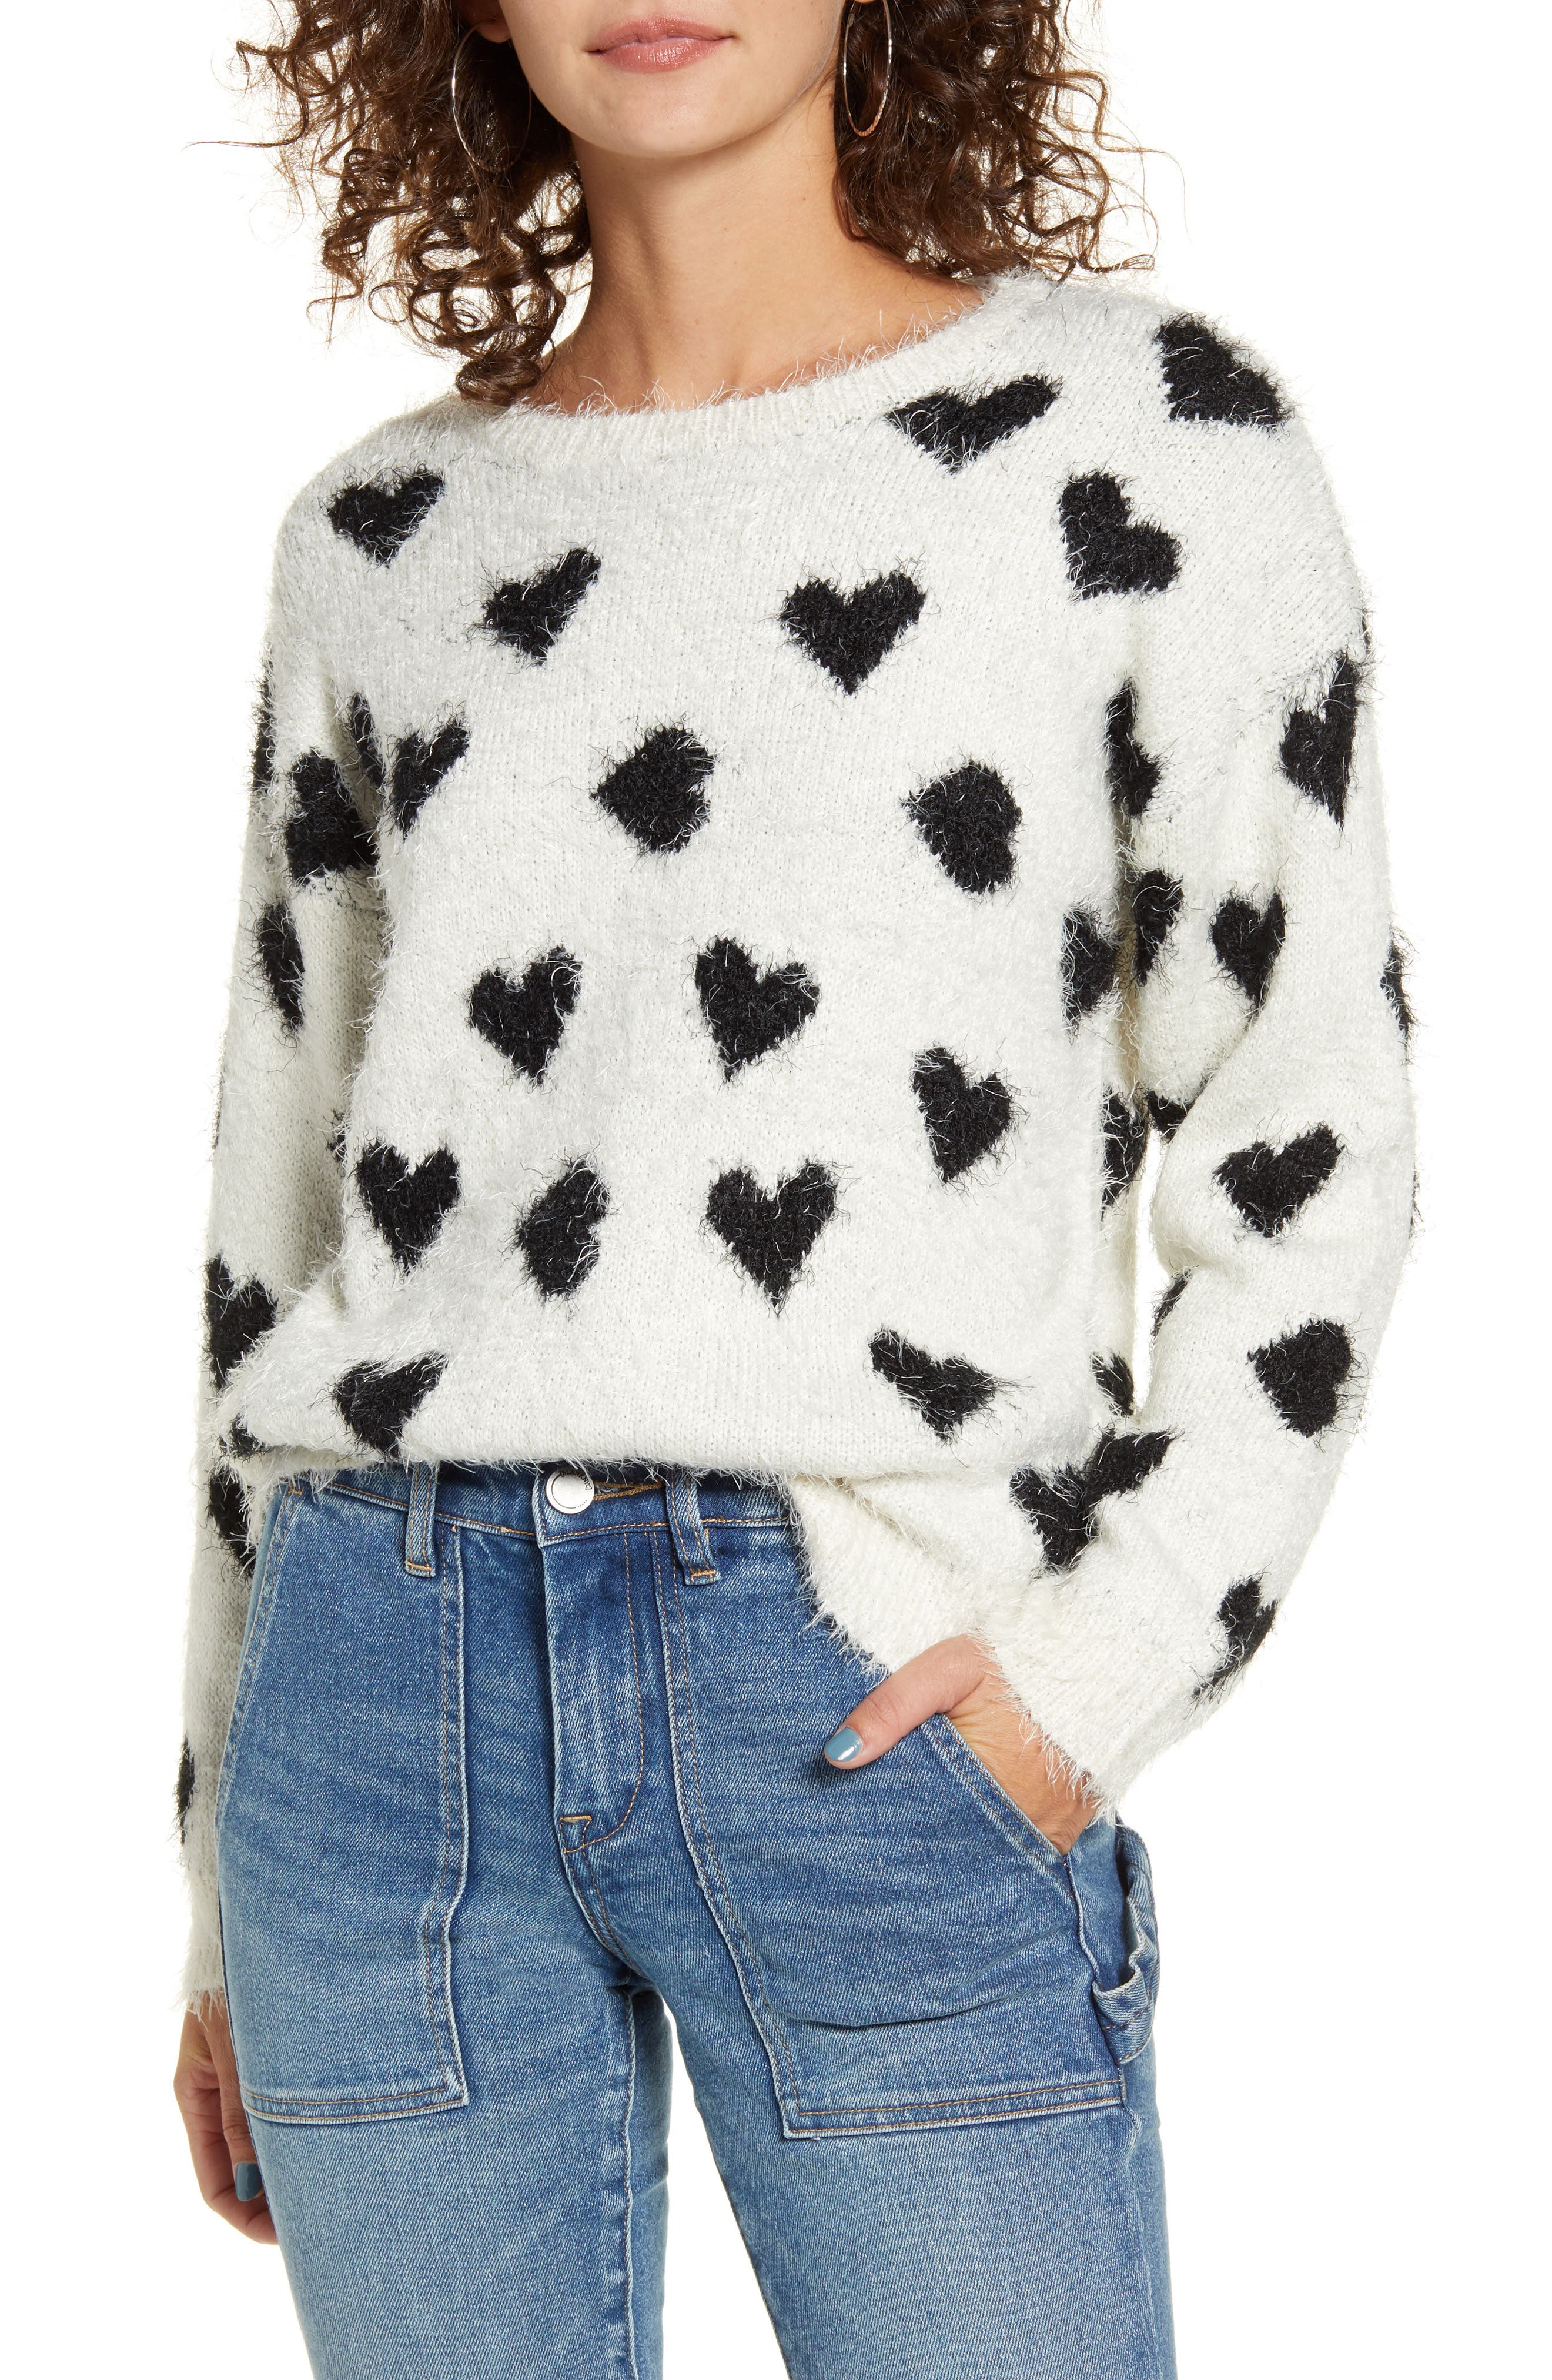 Cotton Emporium Heart Eyelash Sweater